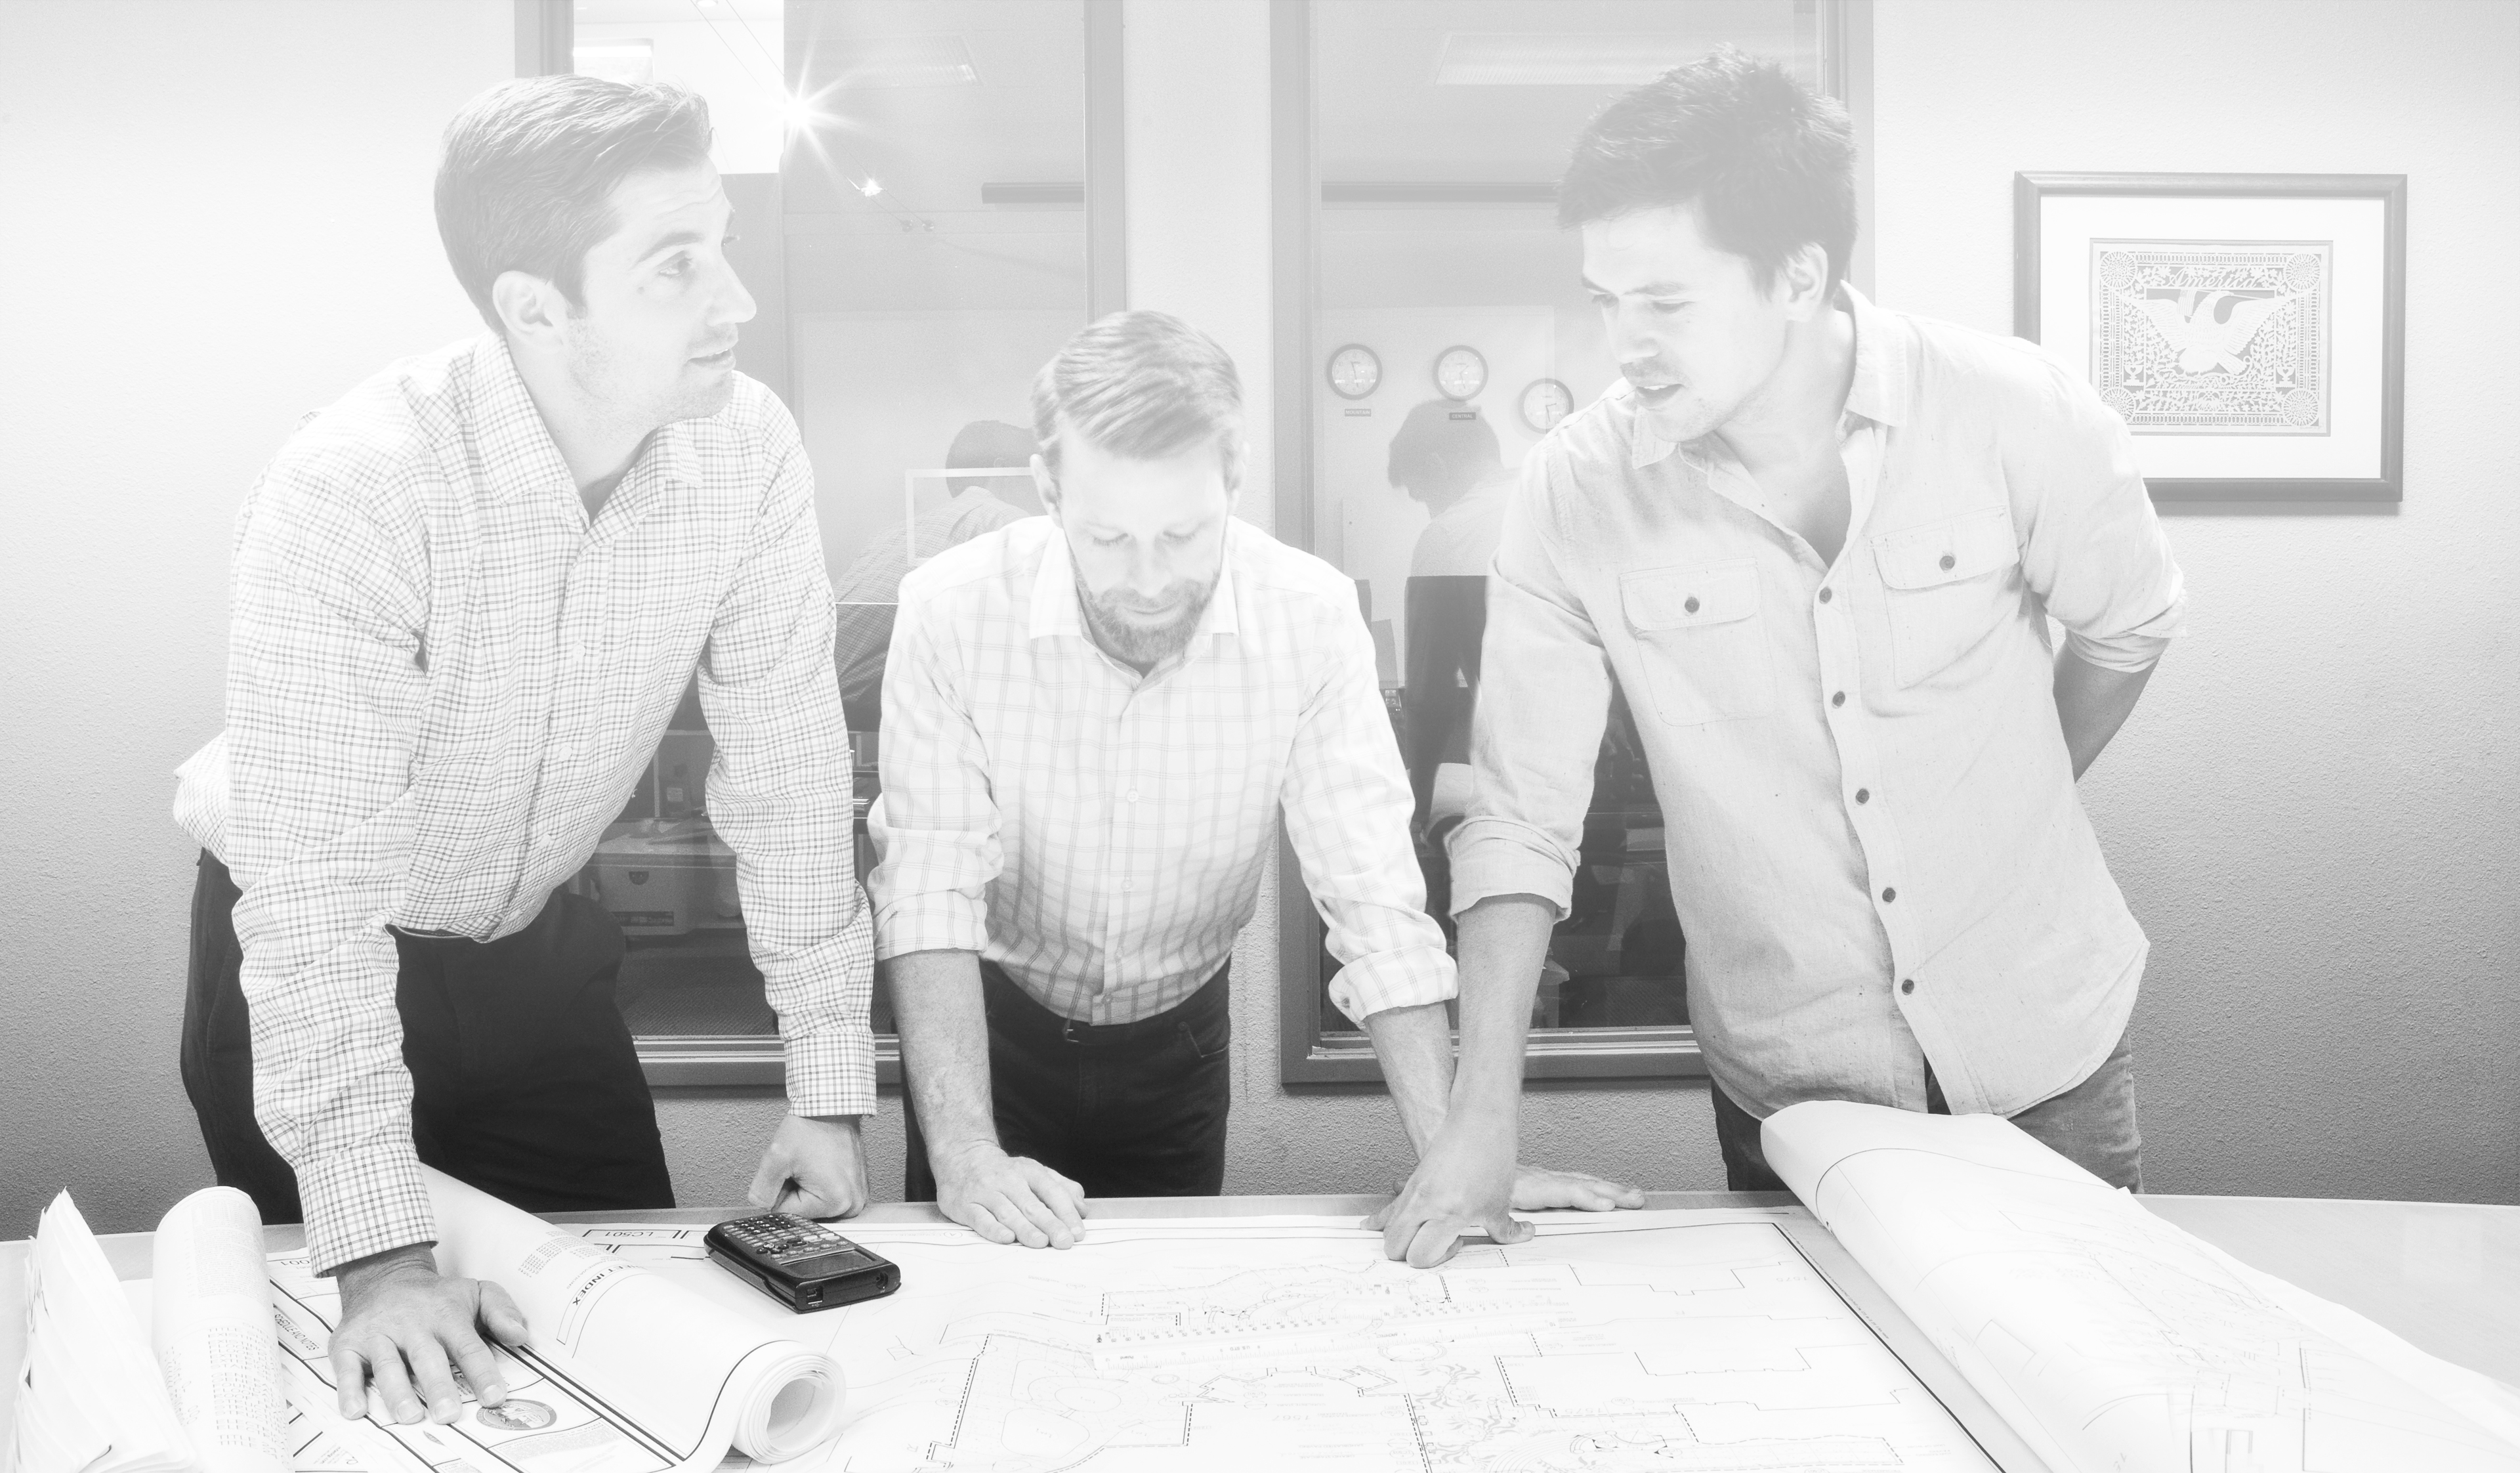 Three Cost Consultants that started Precision Estimating Services